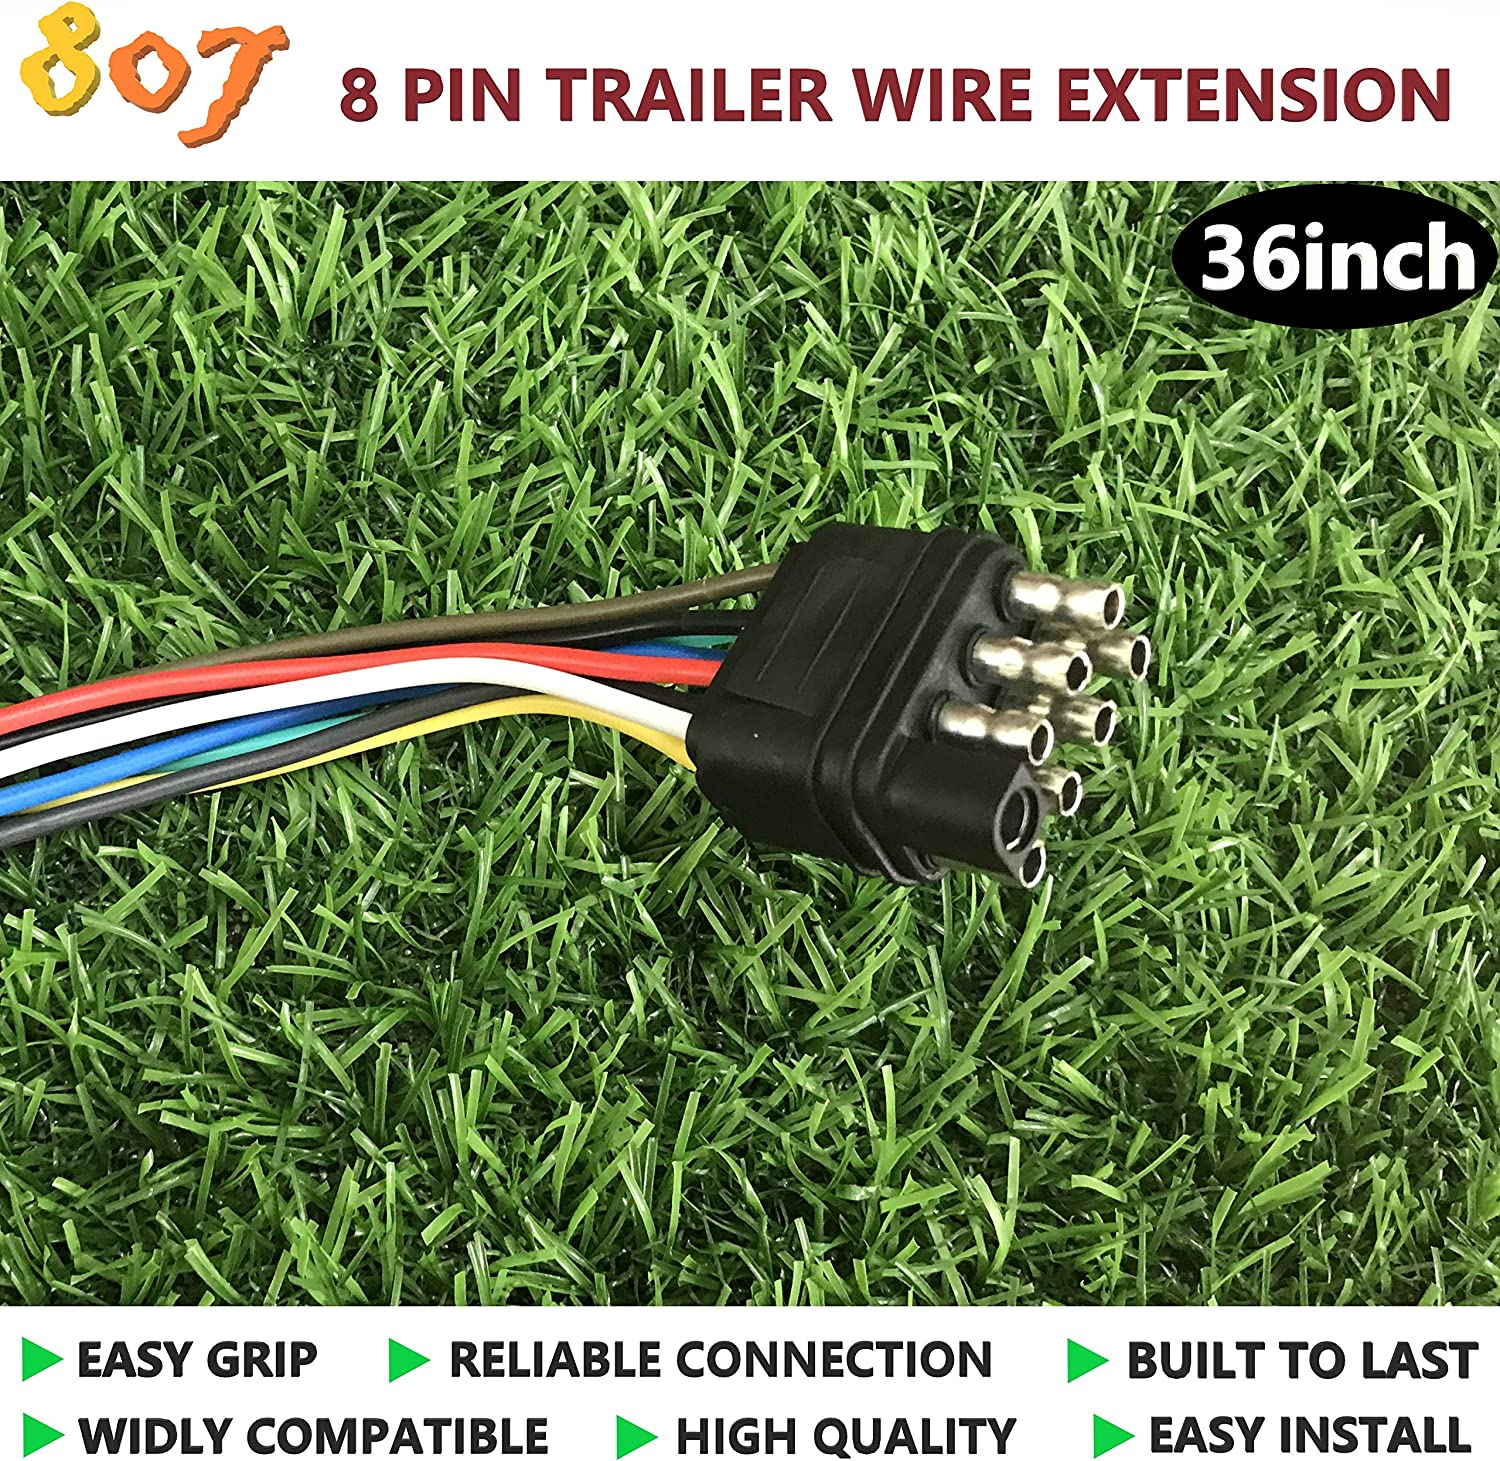 Amazon.com: 807 8 pin Trailer Connector,8 Way Square Trailer Connector Plug  36inch for LED Brake Tailgate Light Bars,Hitch Light Trailer Wiring Harness  Extension Connector(8 Way Square Plug): AutomotiveAmazon.com